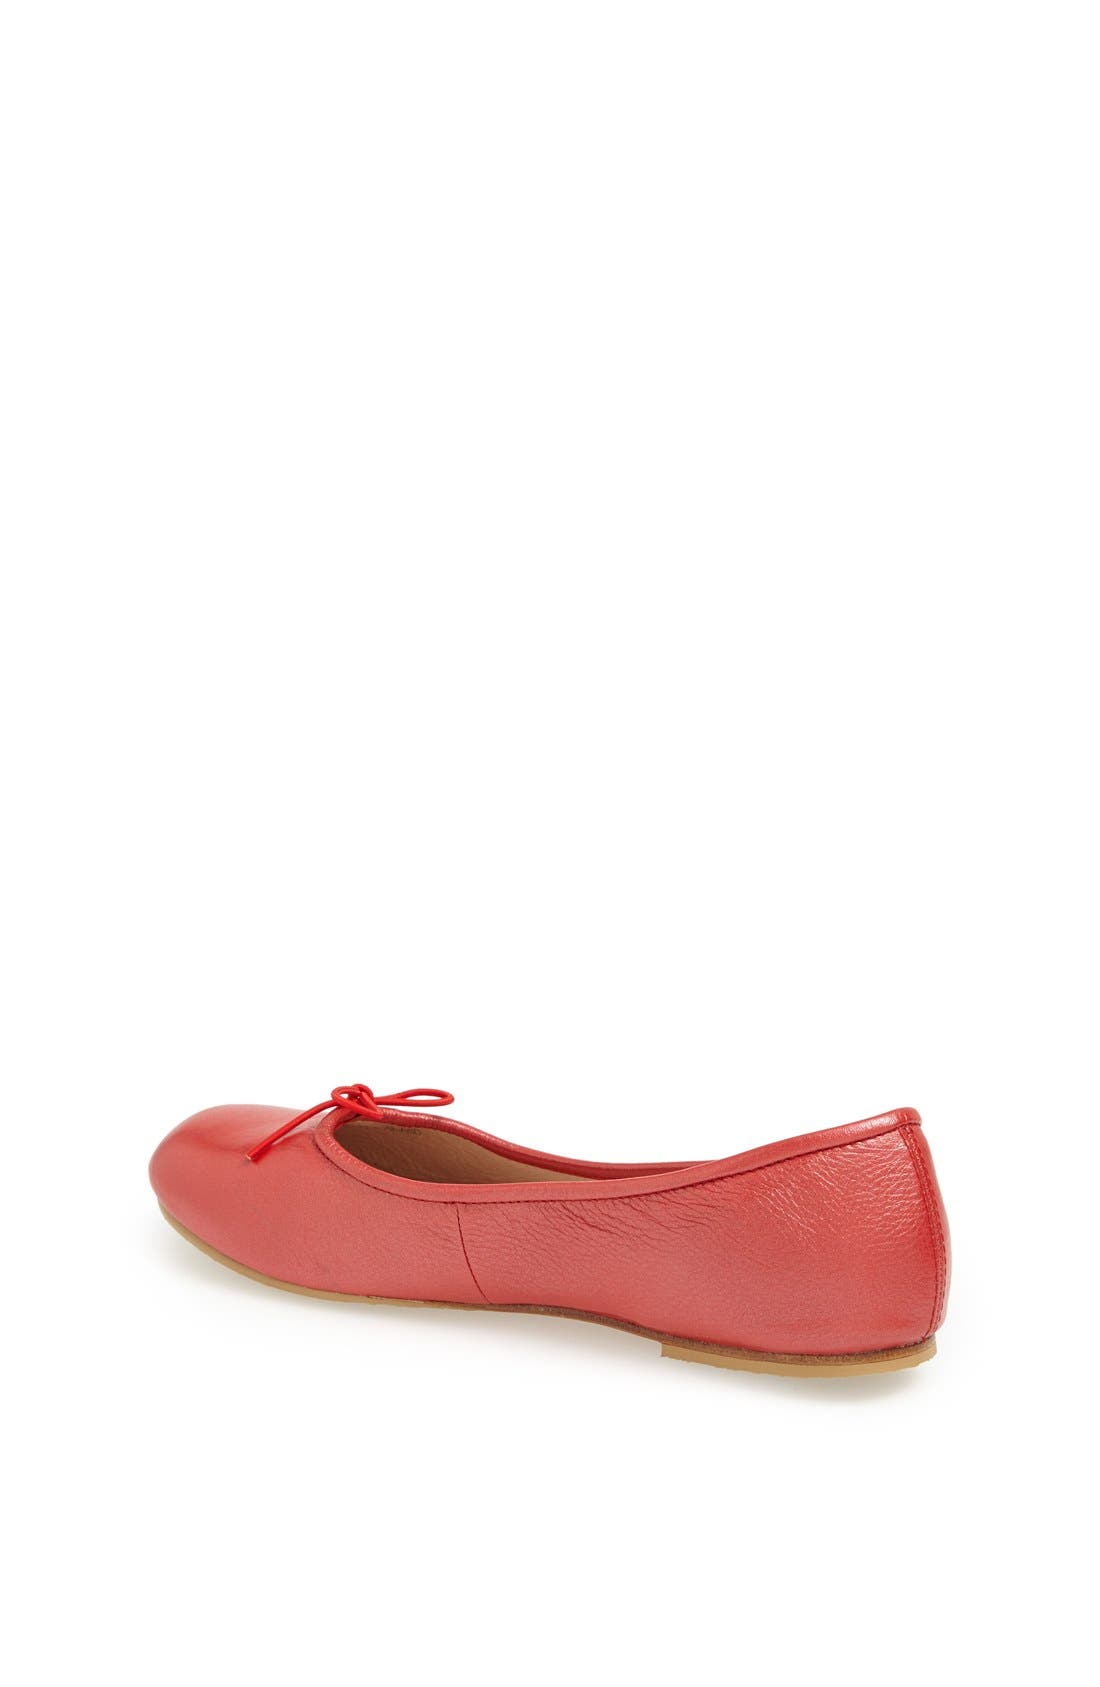 Alternate Image 2  - Bloch 'Arabella' Ballet Flat (Little Kid & Big Kid)